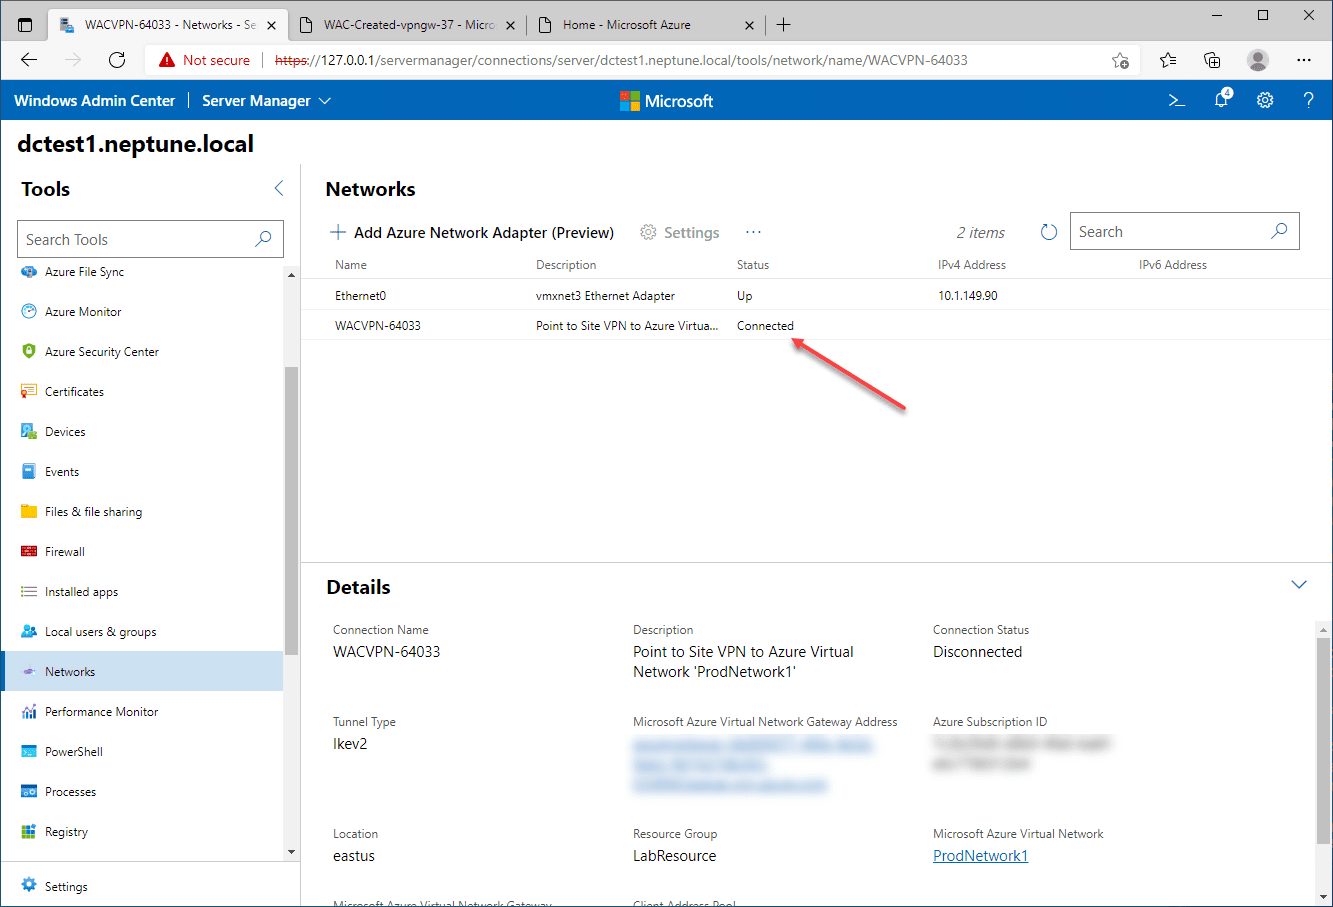 The Azure network adapter is connected successfully